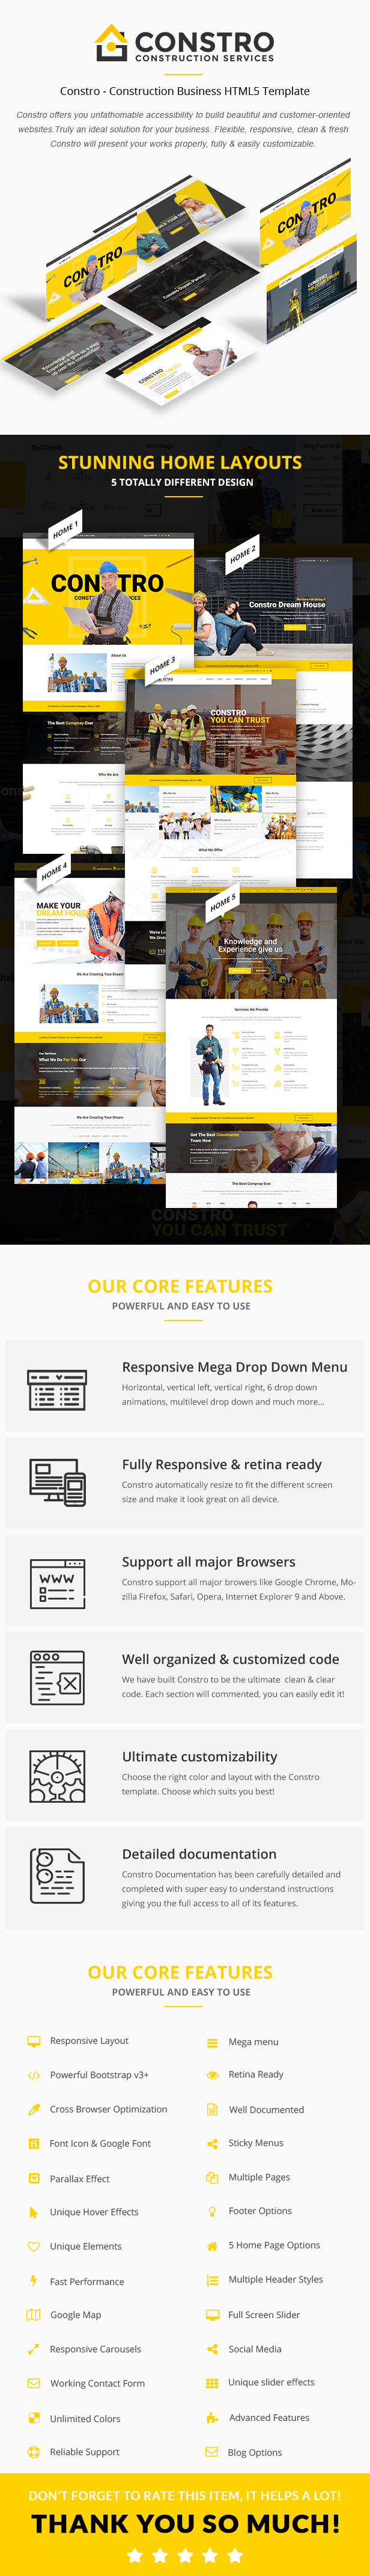 Constro - Construction Business HTML5 Template - 2